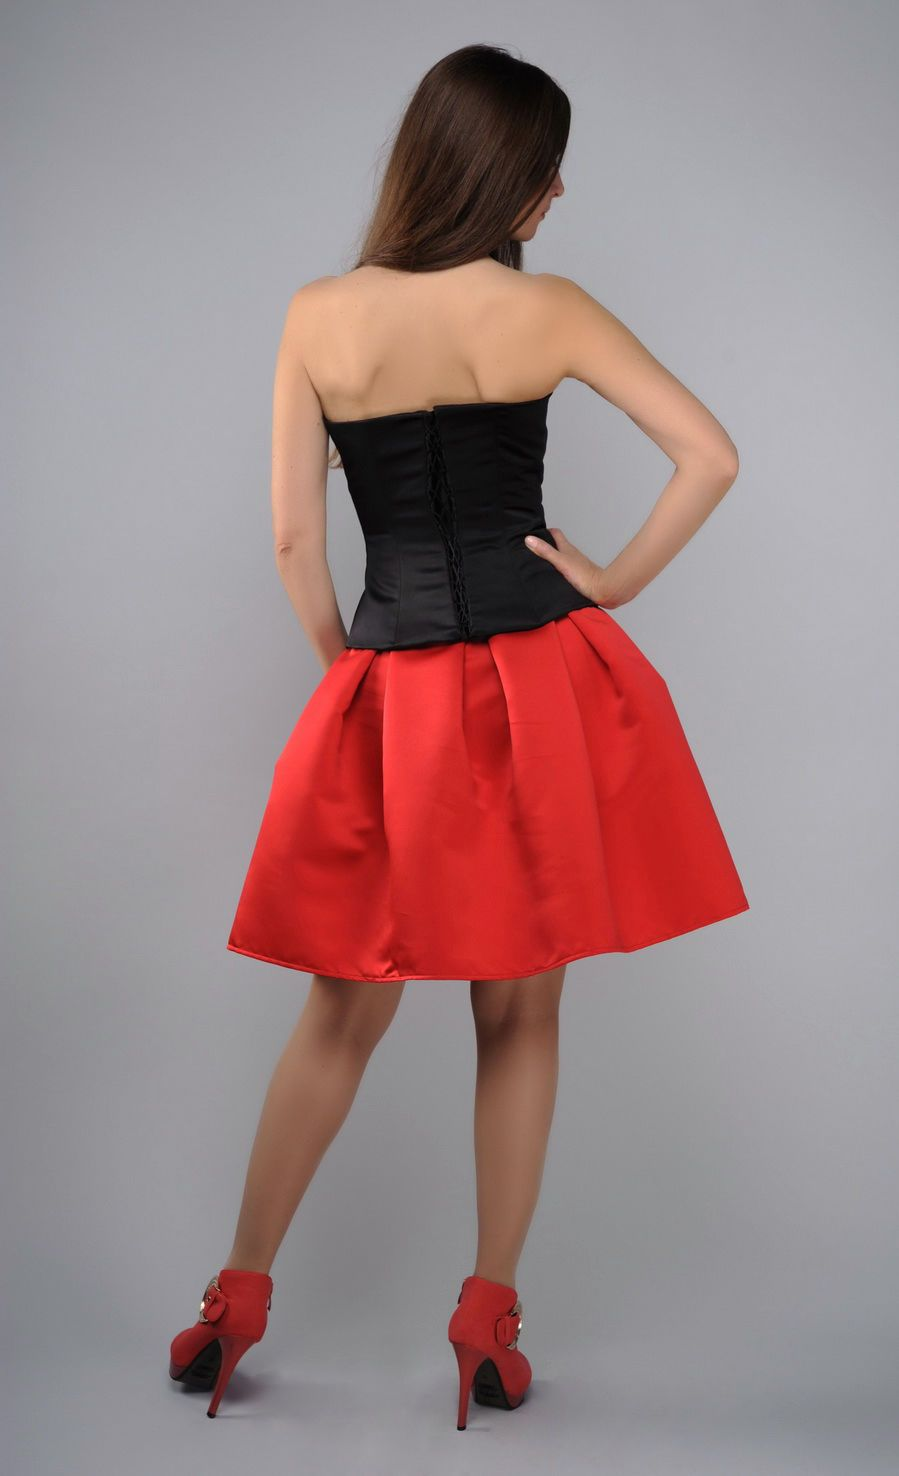 Costume in ethnic style, red and black photo 4